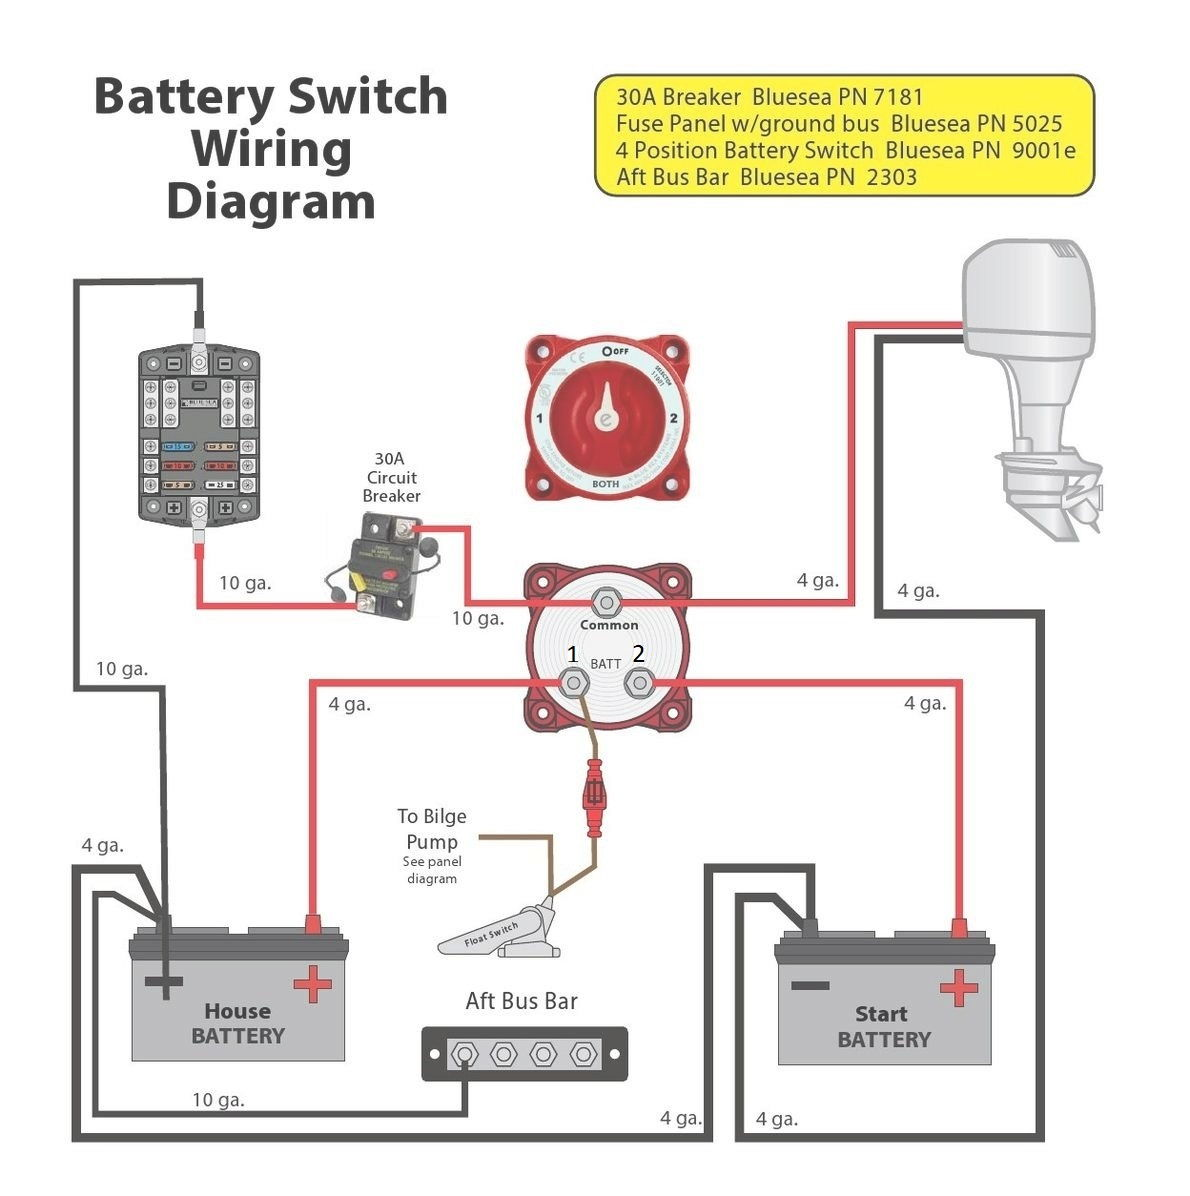 hight resolution of perko wiring diagram wiring diagram user perko battery switch wiring diagrams perko switch wiring diagram wiring